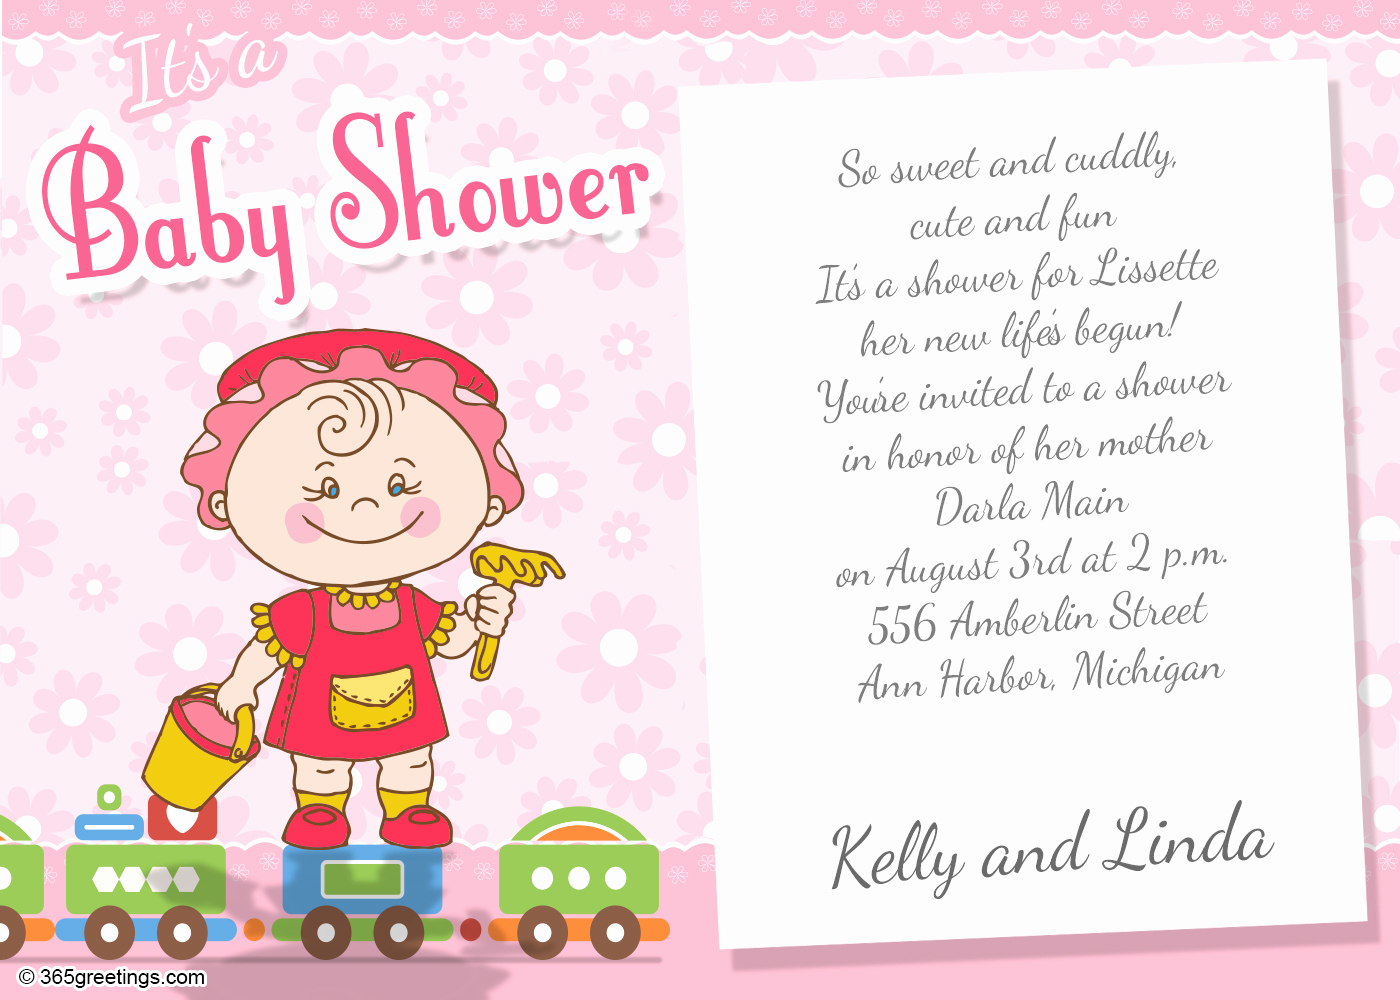 Work Baby Shower Invitation Wording Awesome Baby Shower Invitation Wording for Girl 365greetings